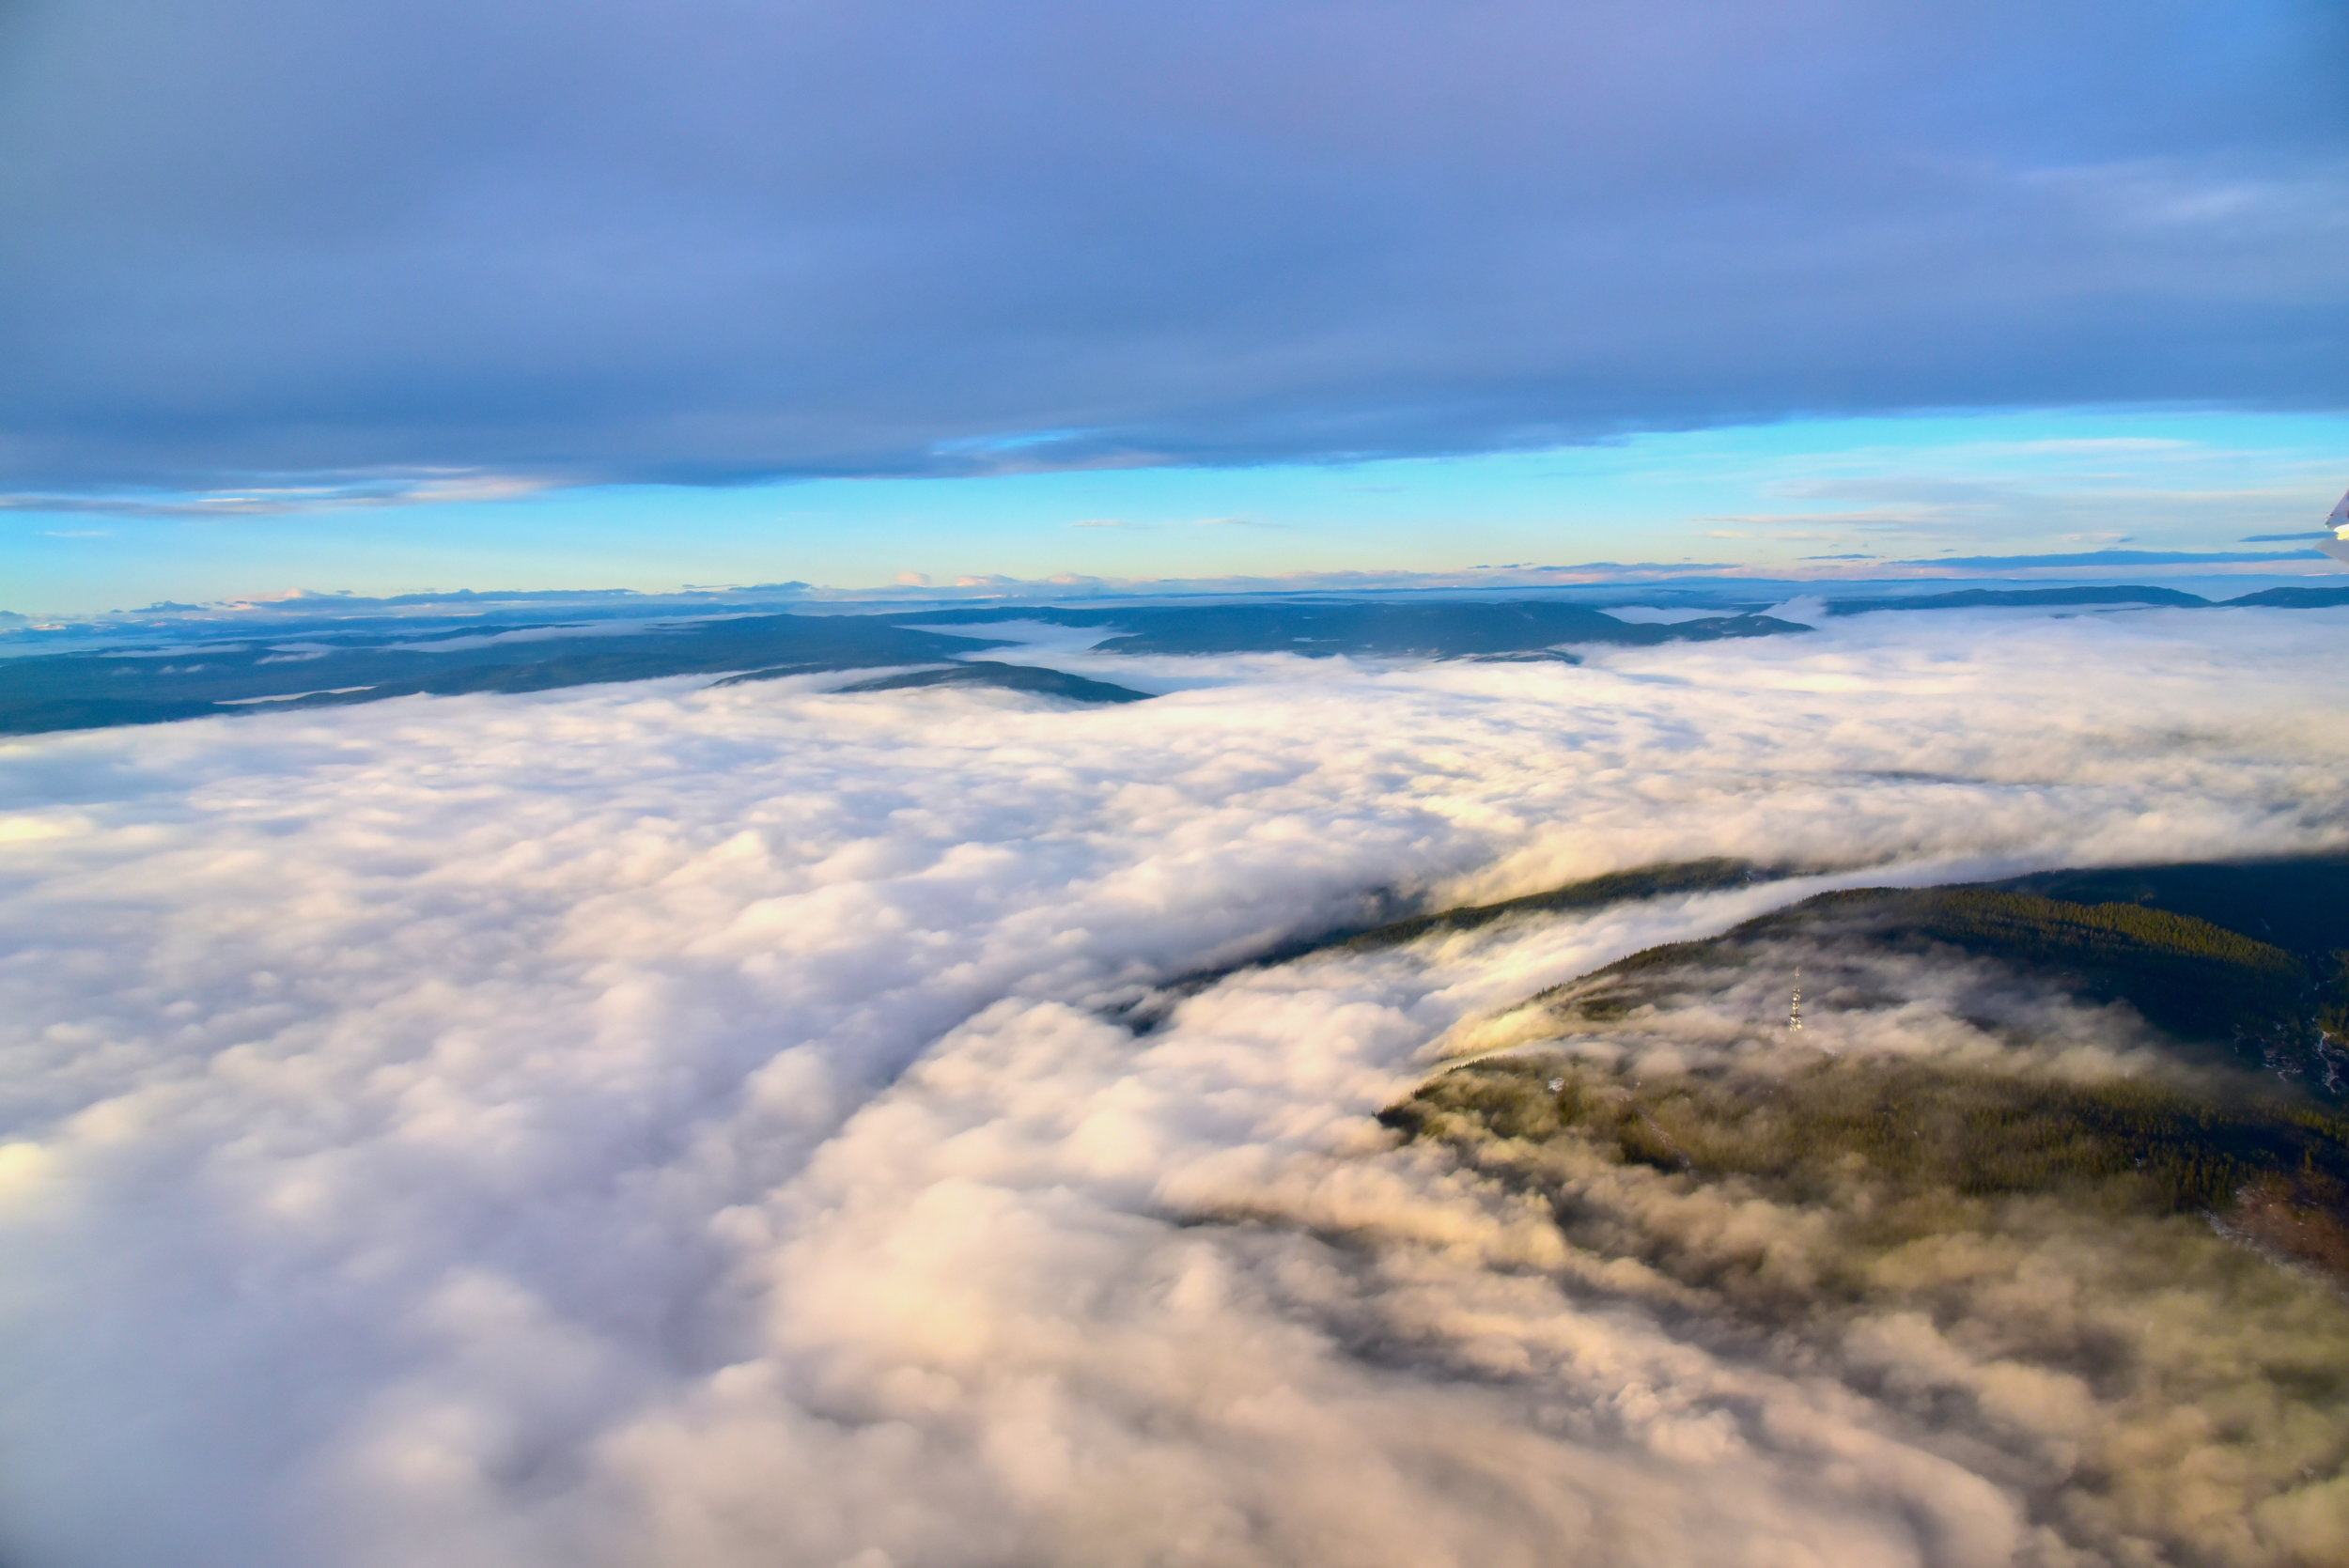 A birdview from the plane, Norway